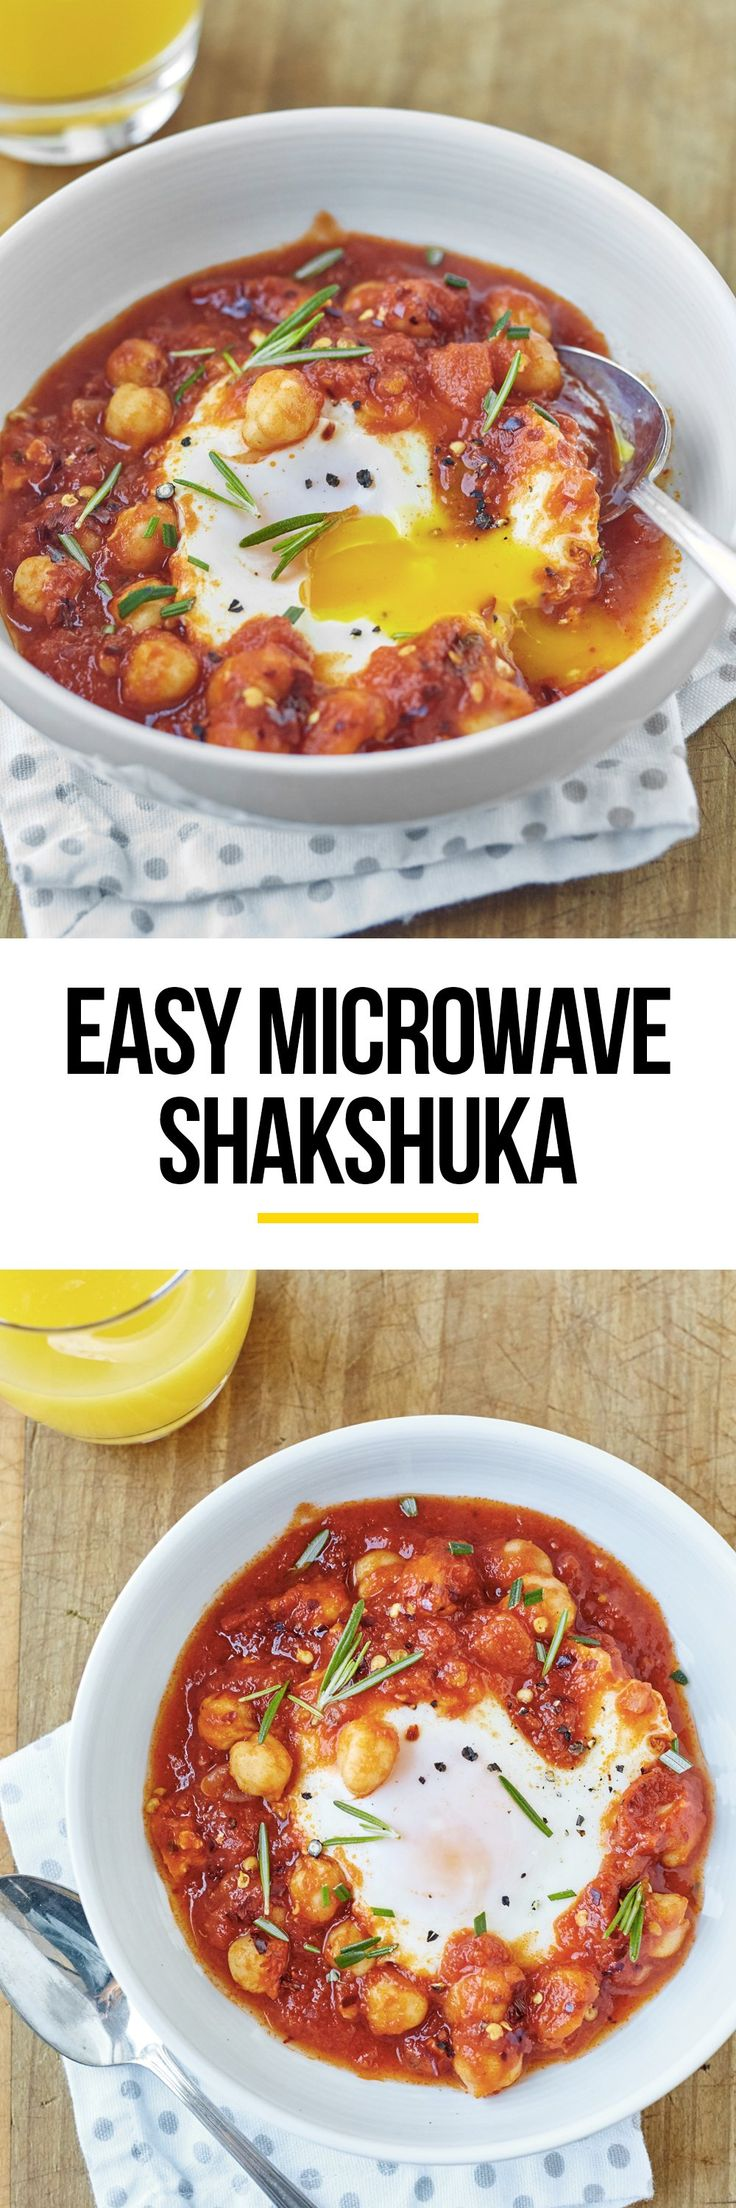 Easy Single Serve Microwave Shakshuka Recipe. This SIMPLE and healthy recipe is perfect for dinners and breakfasts or even lunches at the office. Make it in a cup or in a bowl - these microwave egg recipes for one are perfect meals for college students!